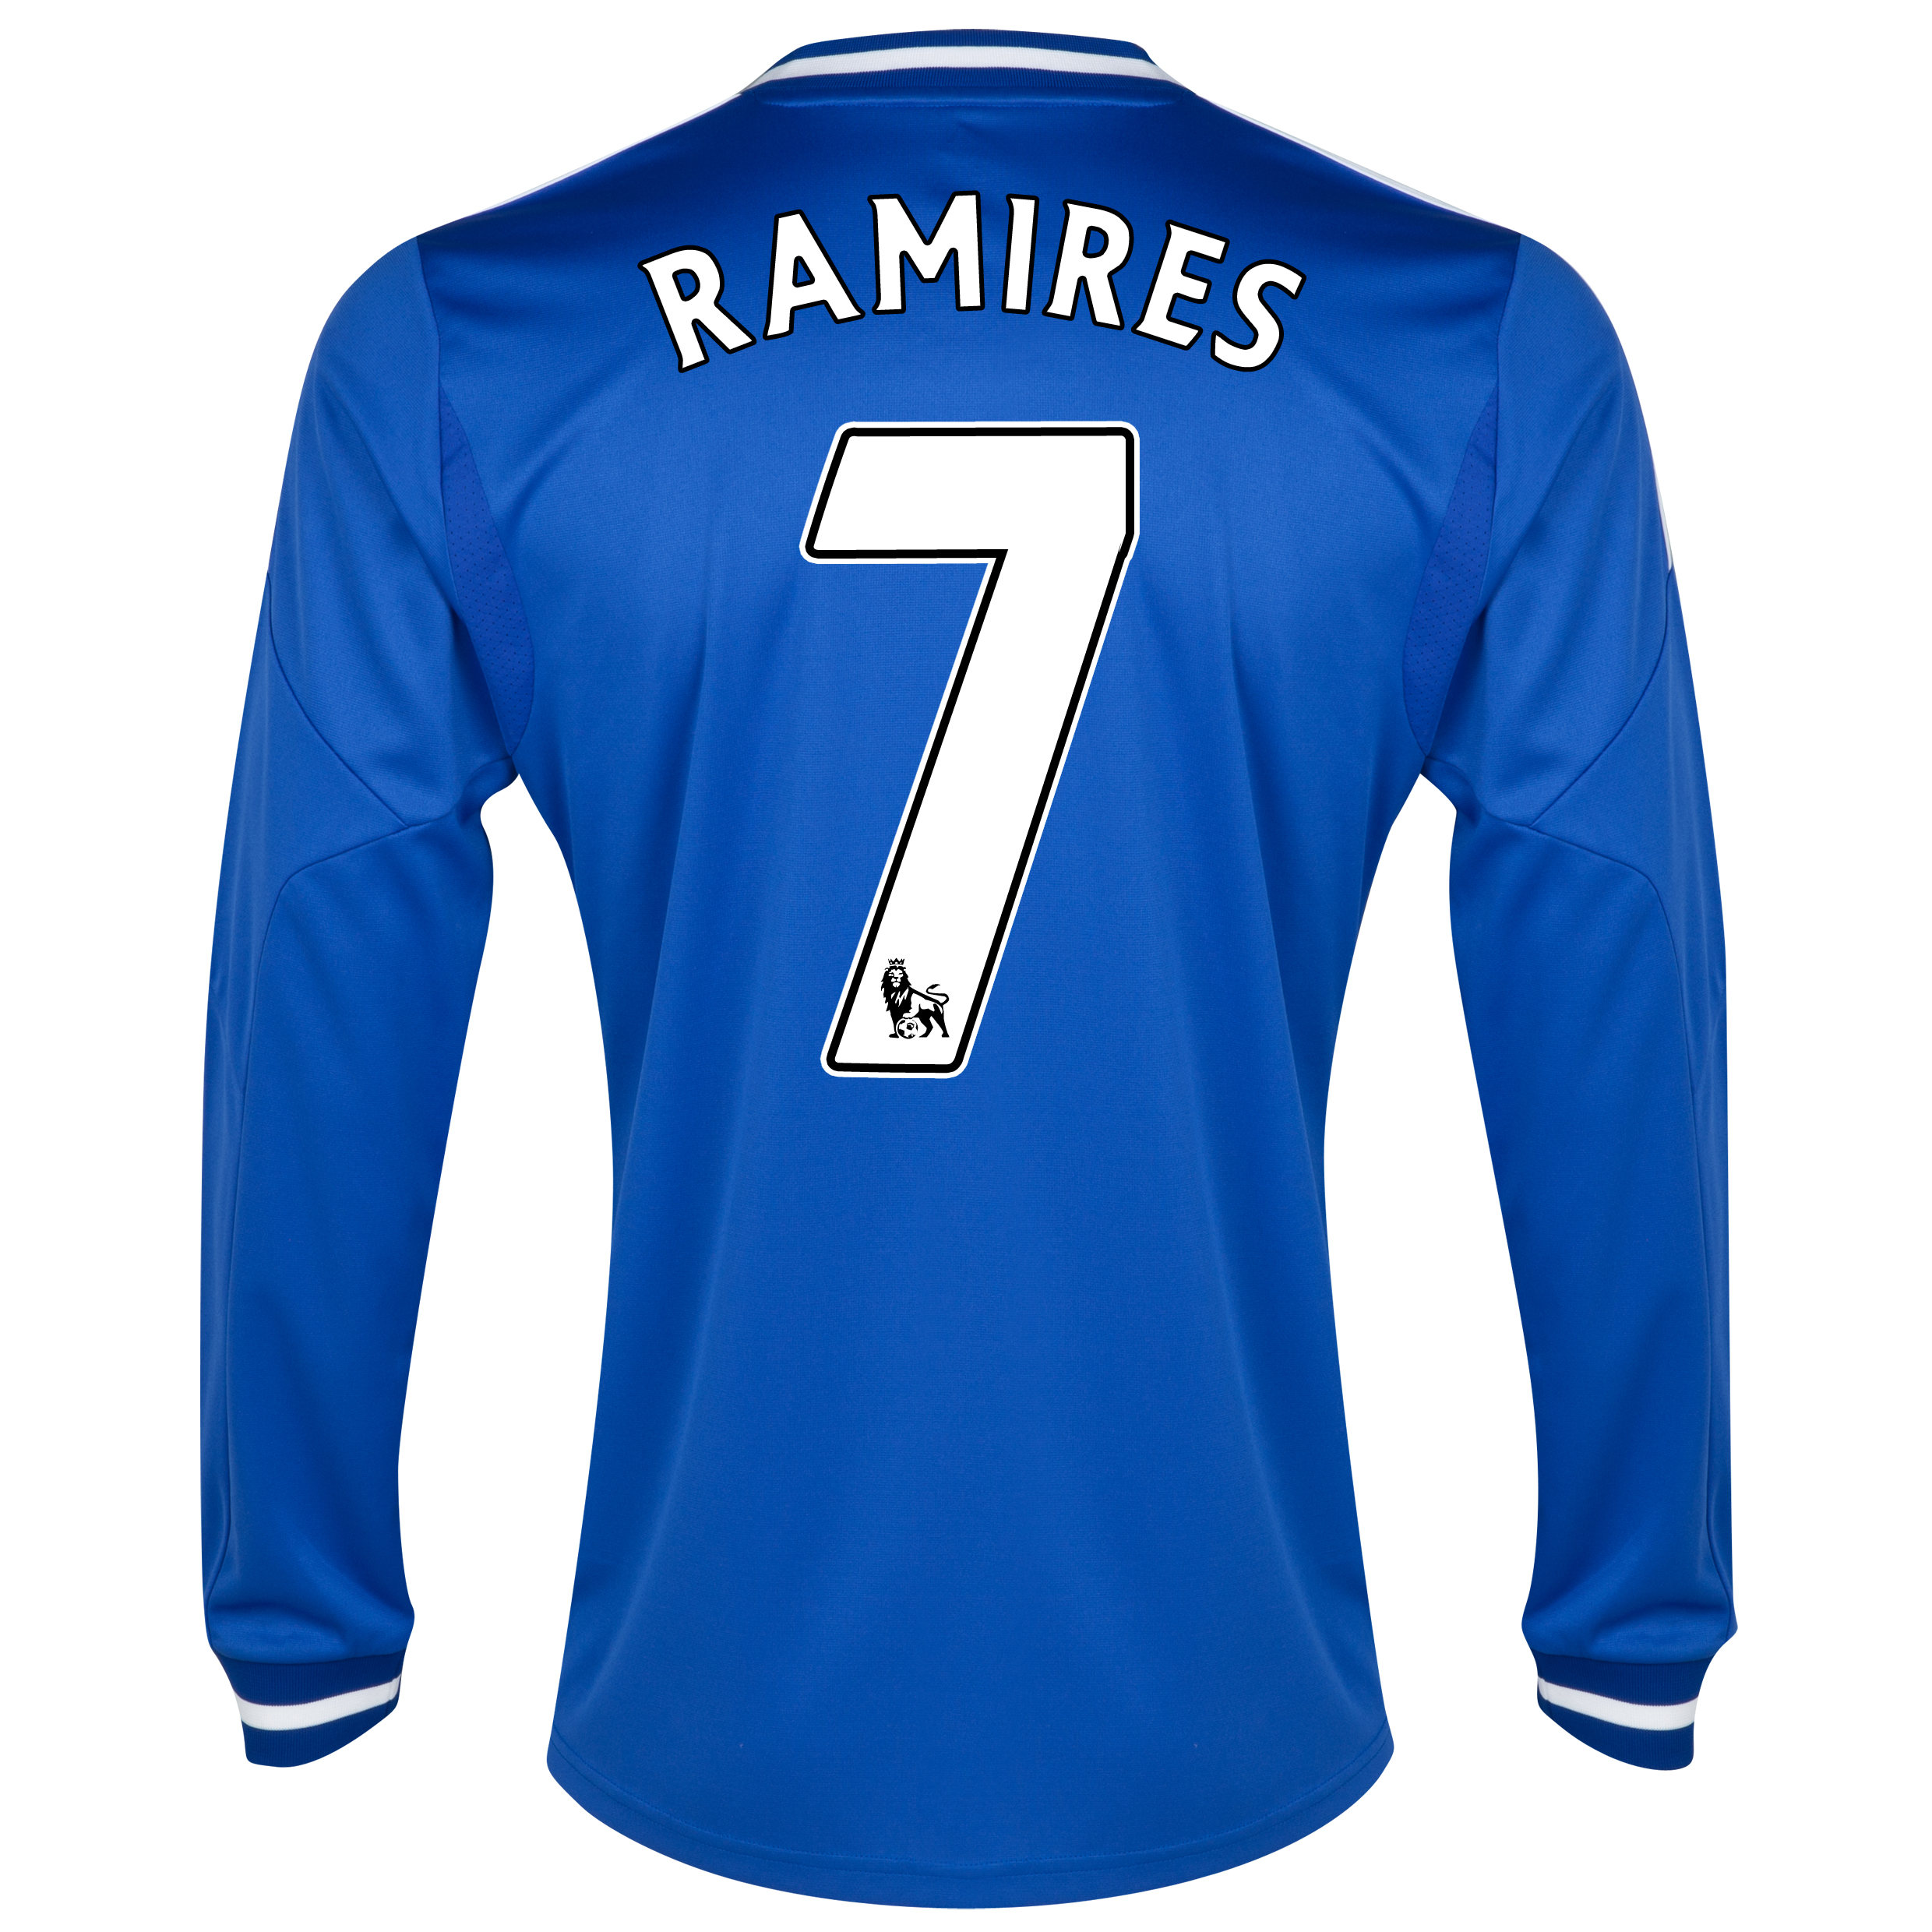 Chelsea Home Shirt 2013/14 - Long Sleeve with Ramires 7 printing